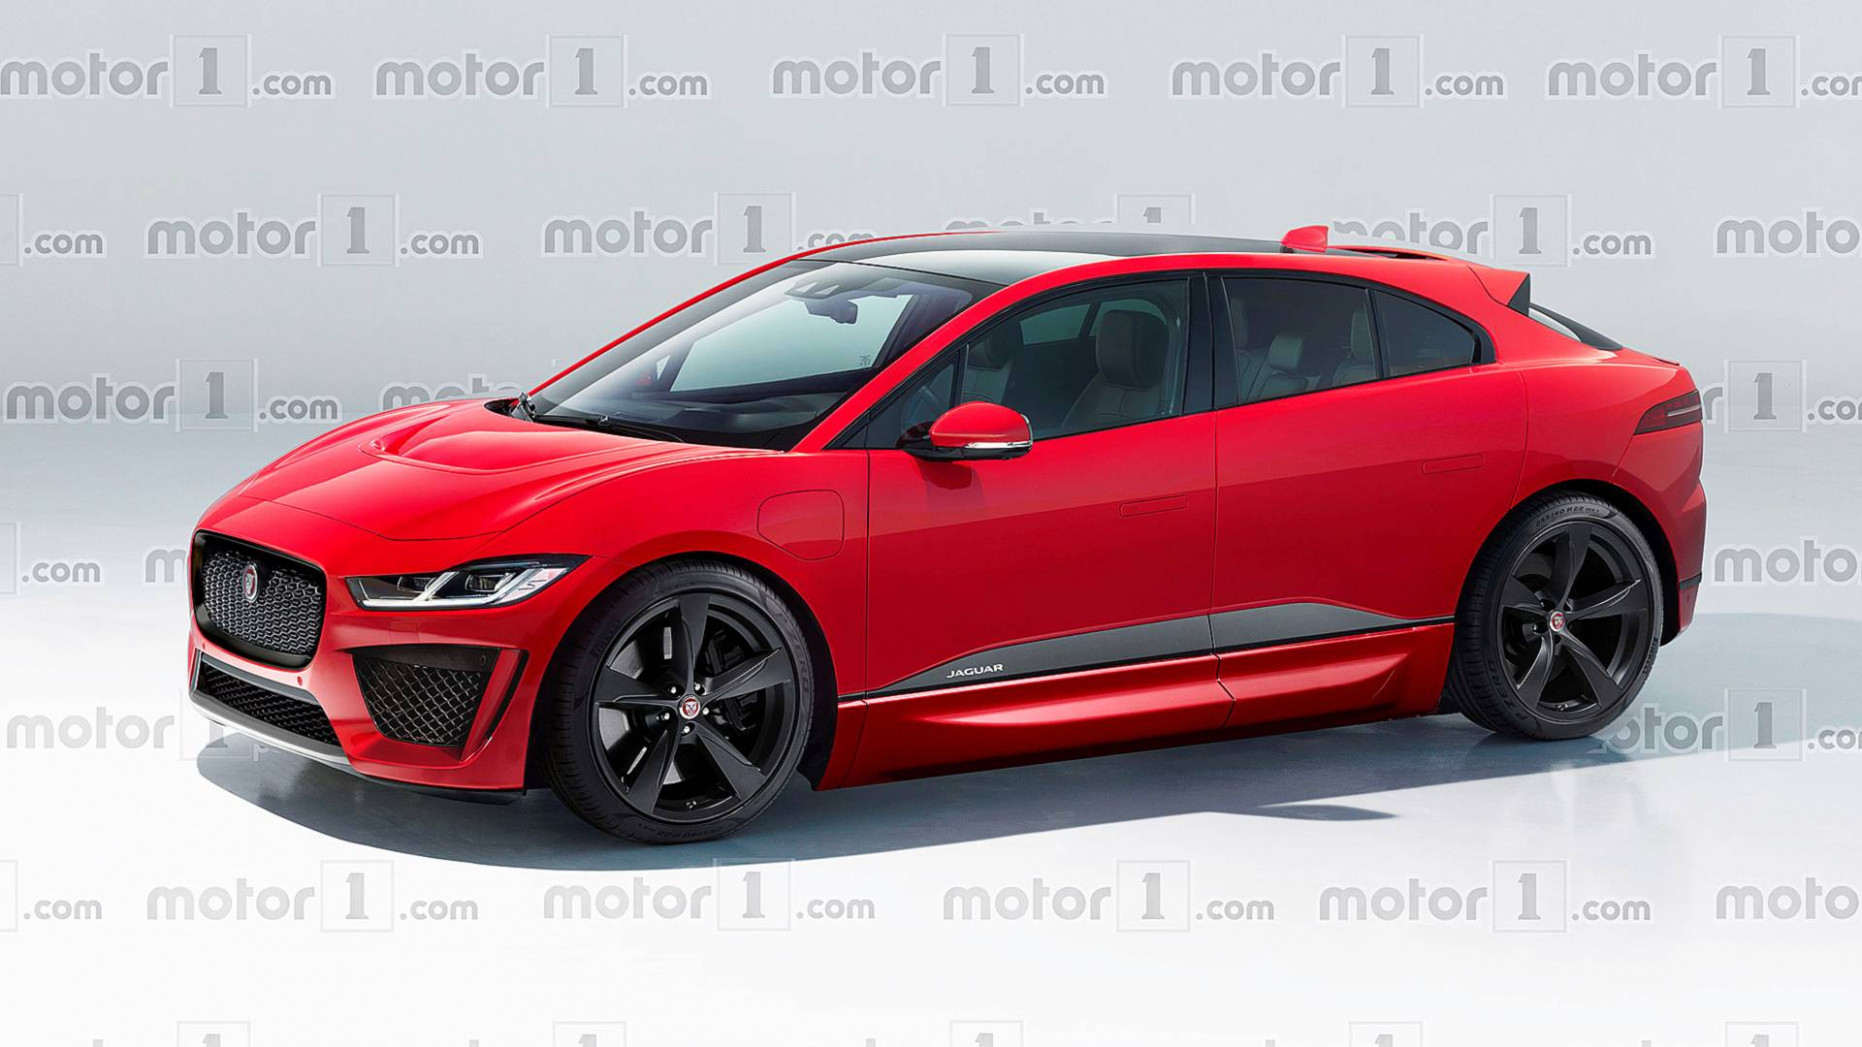 Jaguar I-Pace SVR Officially Confirmed As Hot Electric SUV - jaguar i-pace electric cars 2020